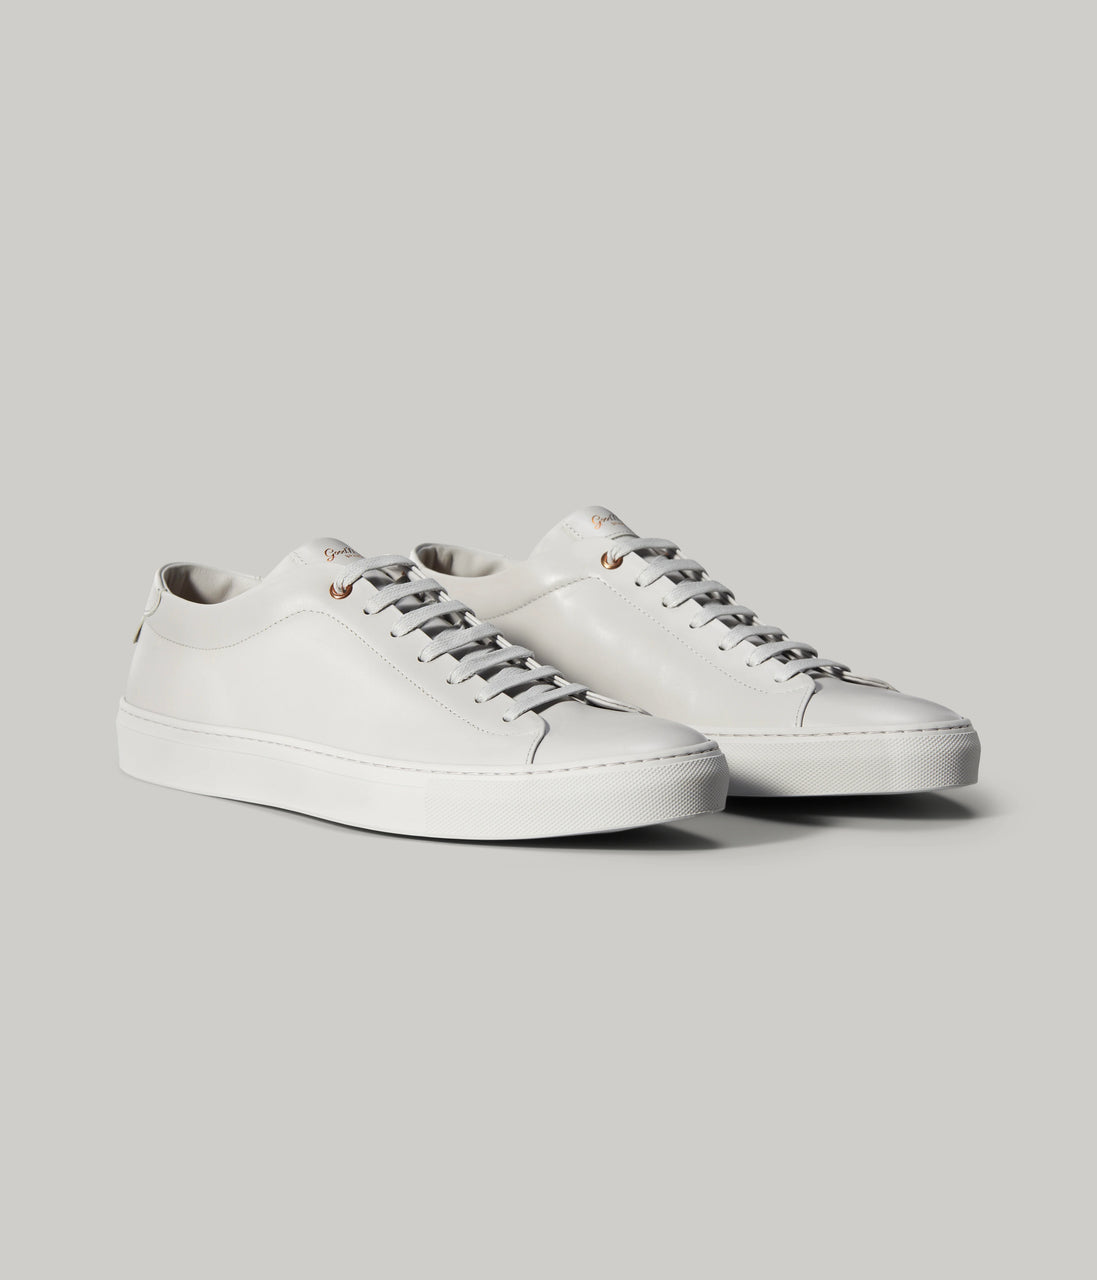 Edge Lo-Top Sneaker - Silver - Good Man Brand - Edge Lo-Top Sneaker - Silver